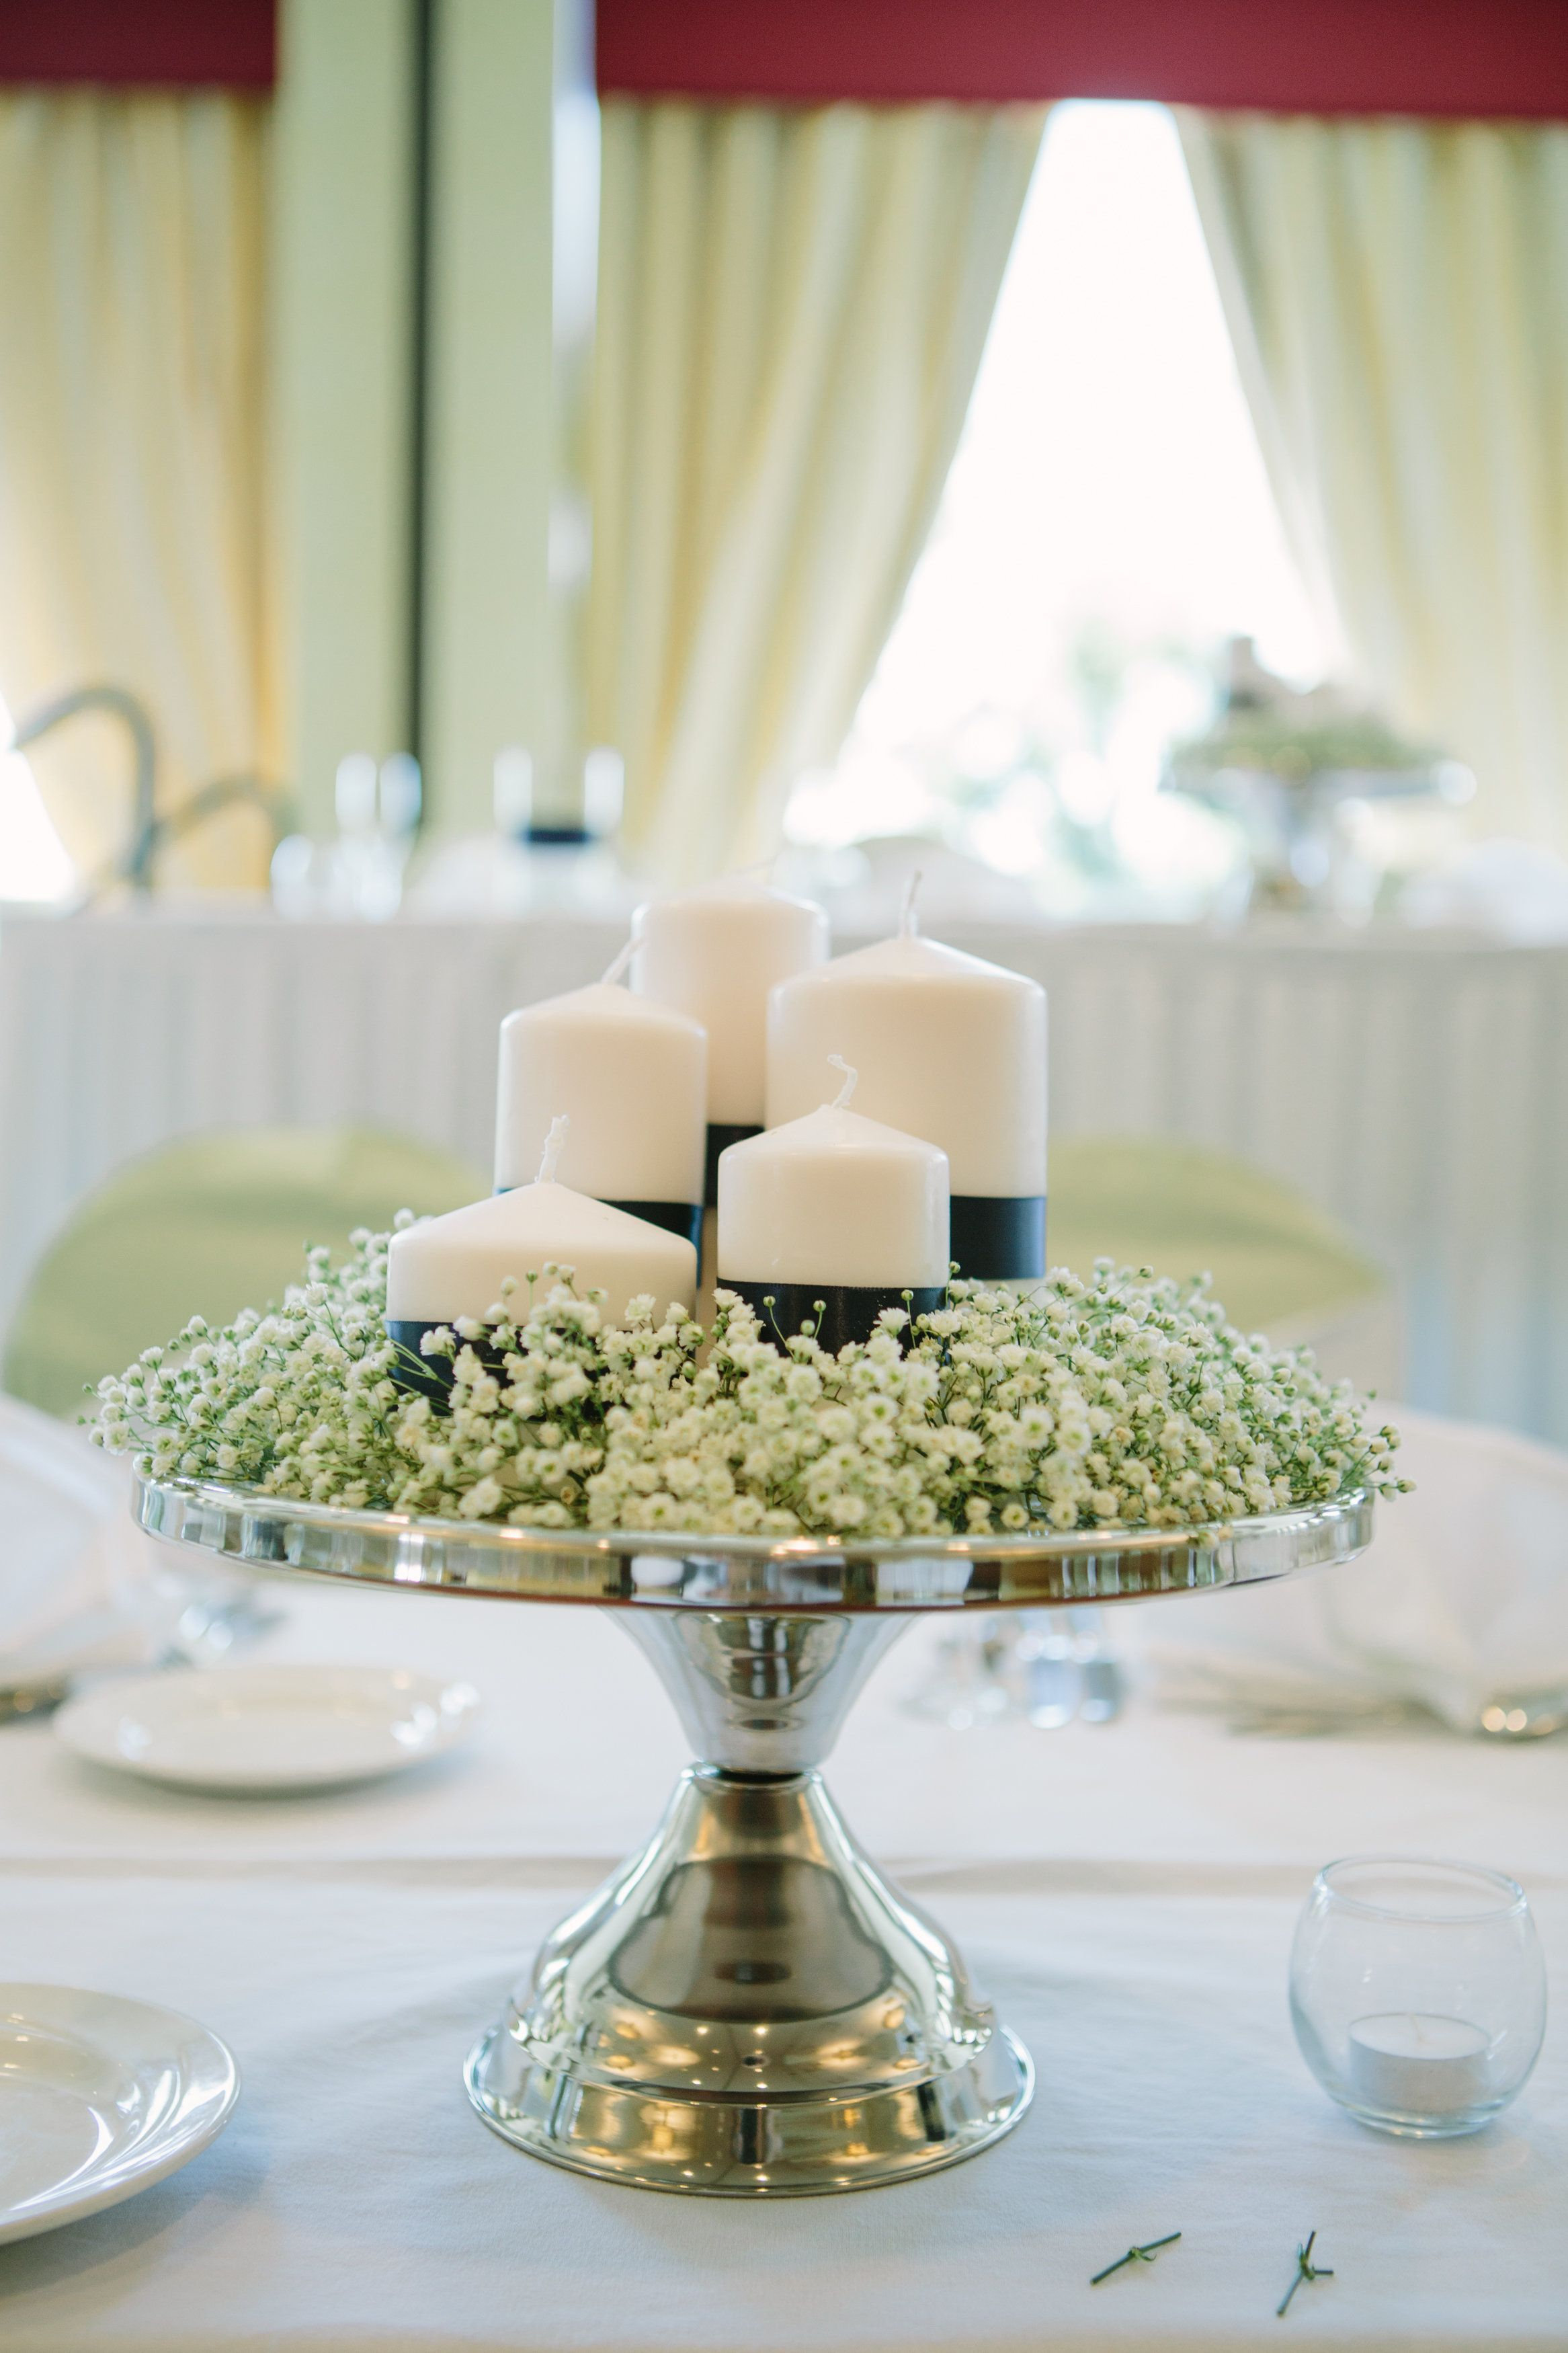 Centerpieces stainless steel cake stands with white